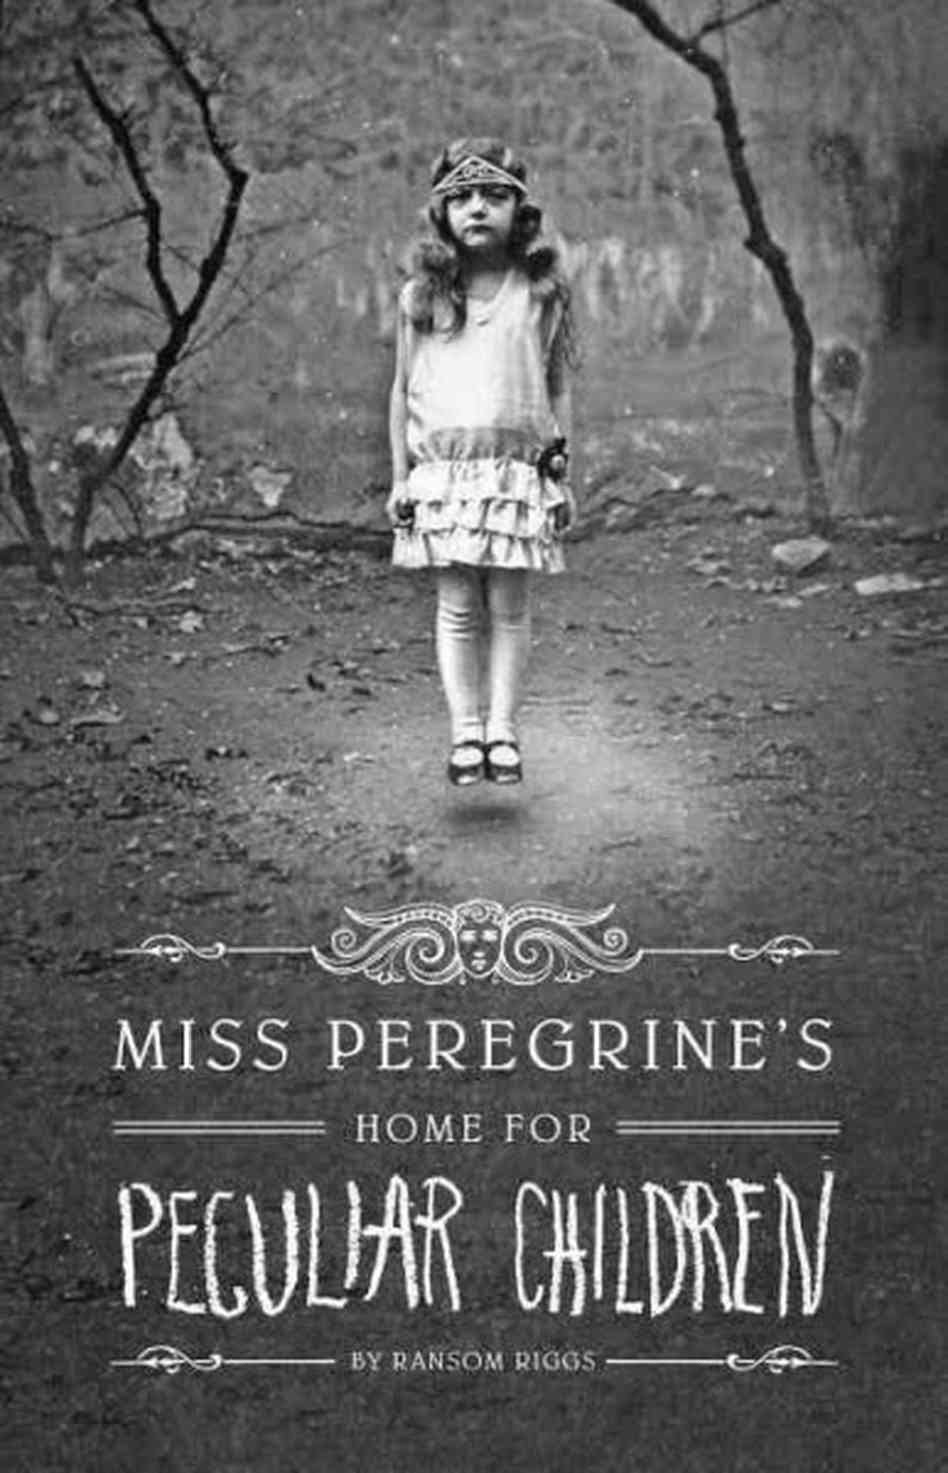 Miss Peregrine's Home For Peculiar Children: My Review